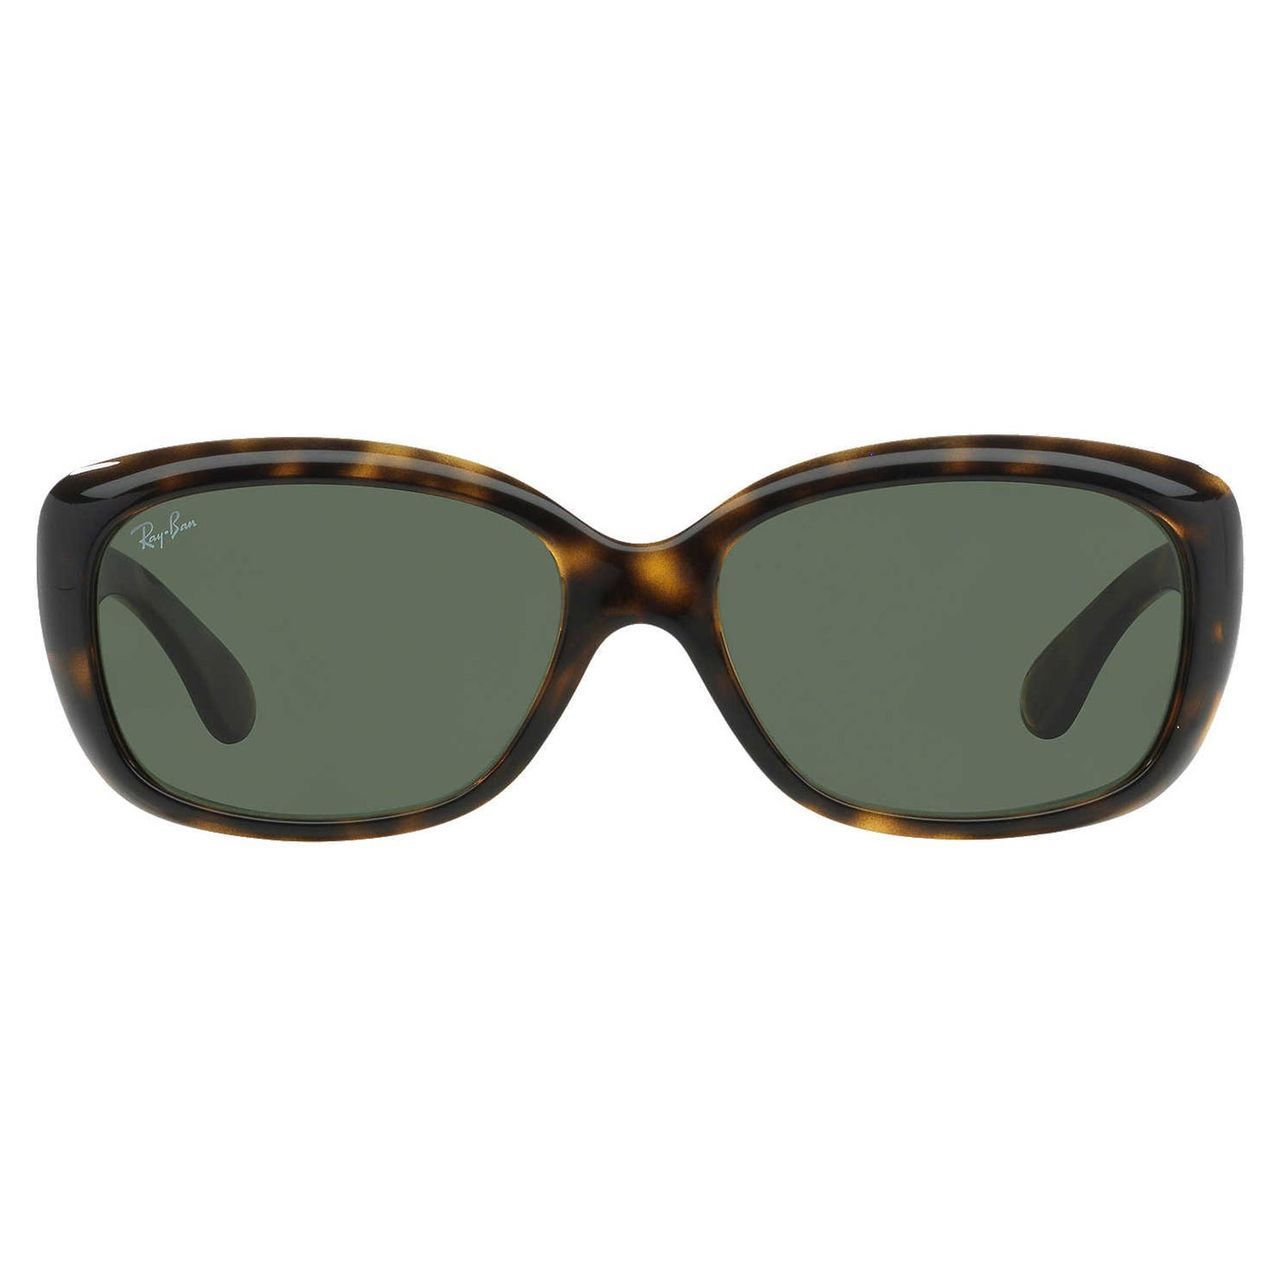 4b112f371b Shop Ray-Ban G-15XLT  Jackie Oh  Sunglasses - 58mm - Tortoise - Large -  Free Shipping Today - Overstock - 10161521